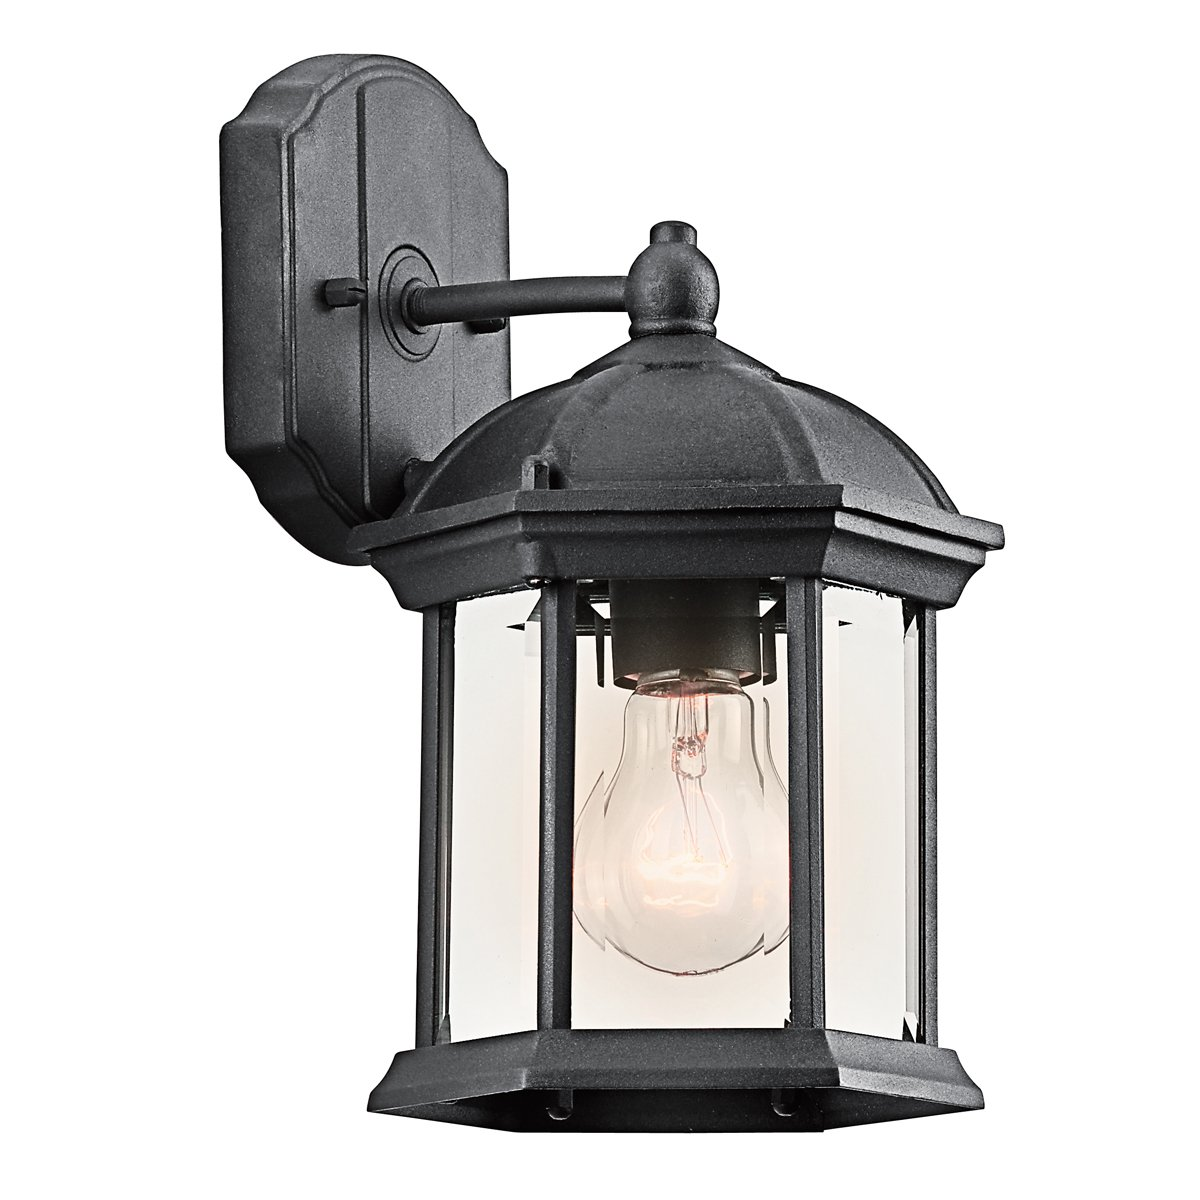 Kichler 9736TZ One Light Outdoor Wall Mount   Wall Porch Lights   Amazon.com